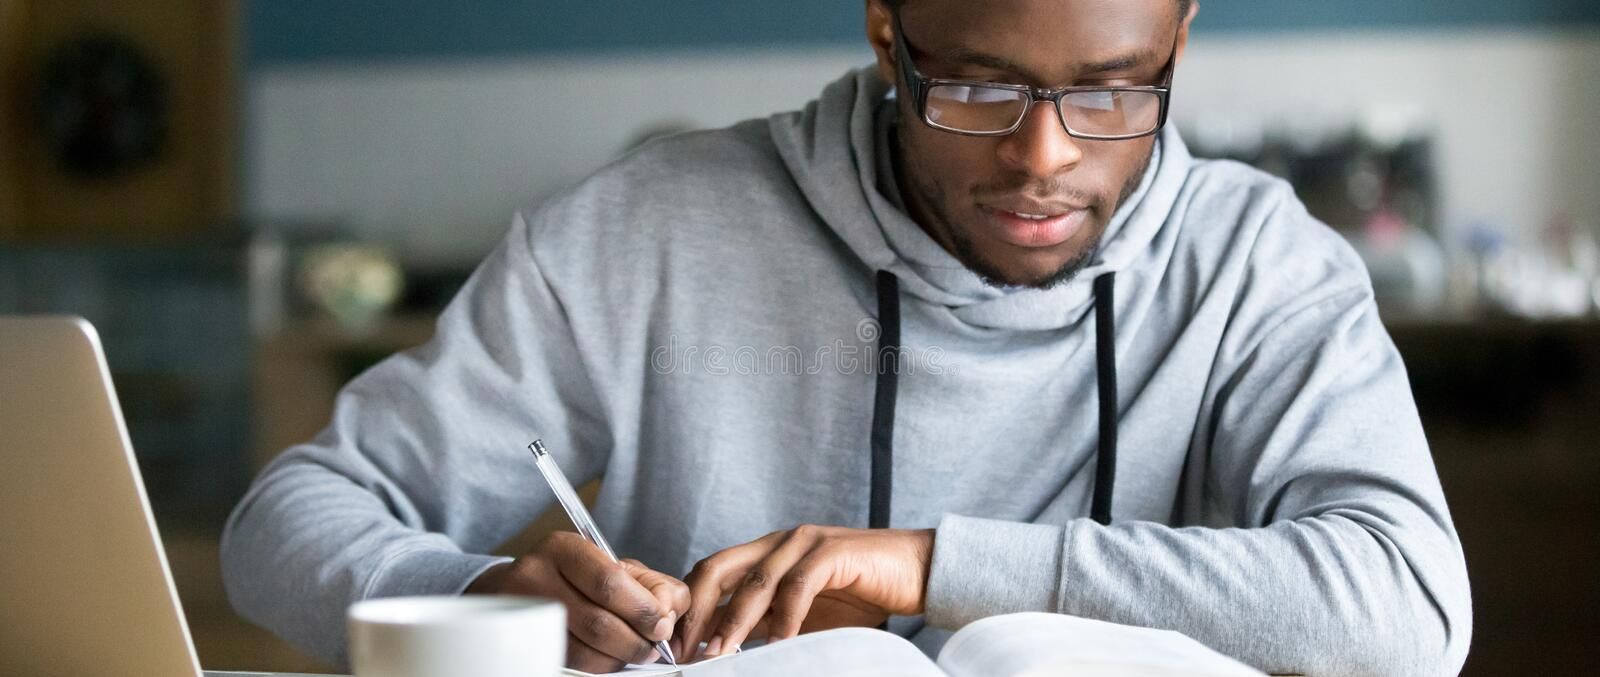 Horizontal photo african student study writing using book and computer. Closeup smart millennial african student wear glasses hold pen noting writing down royalty free stock photos